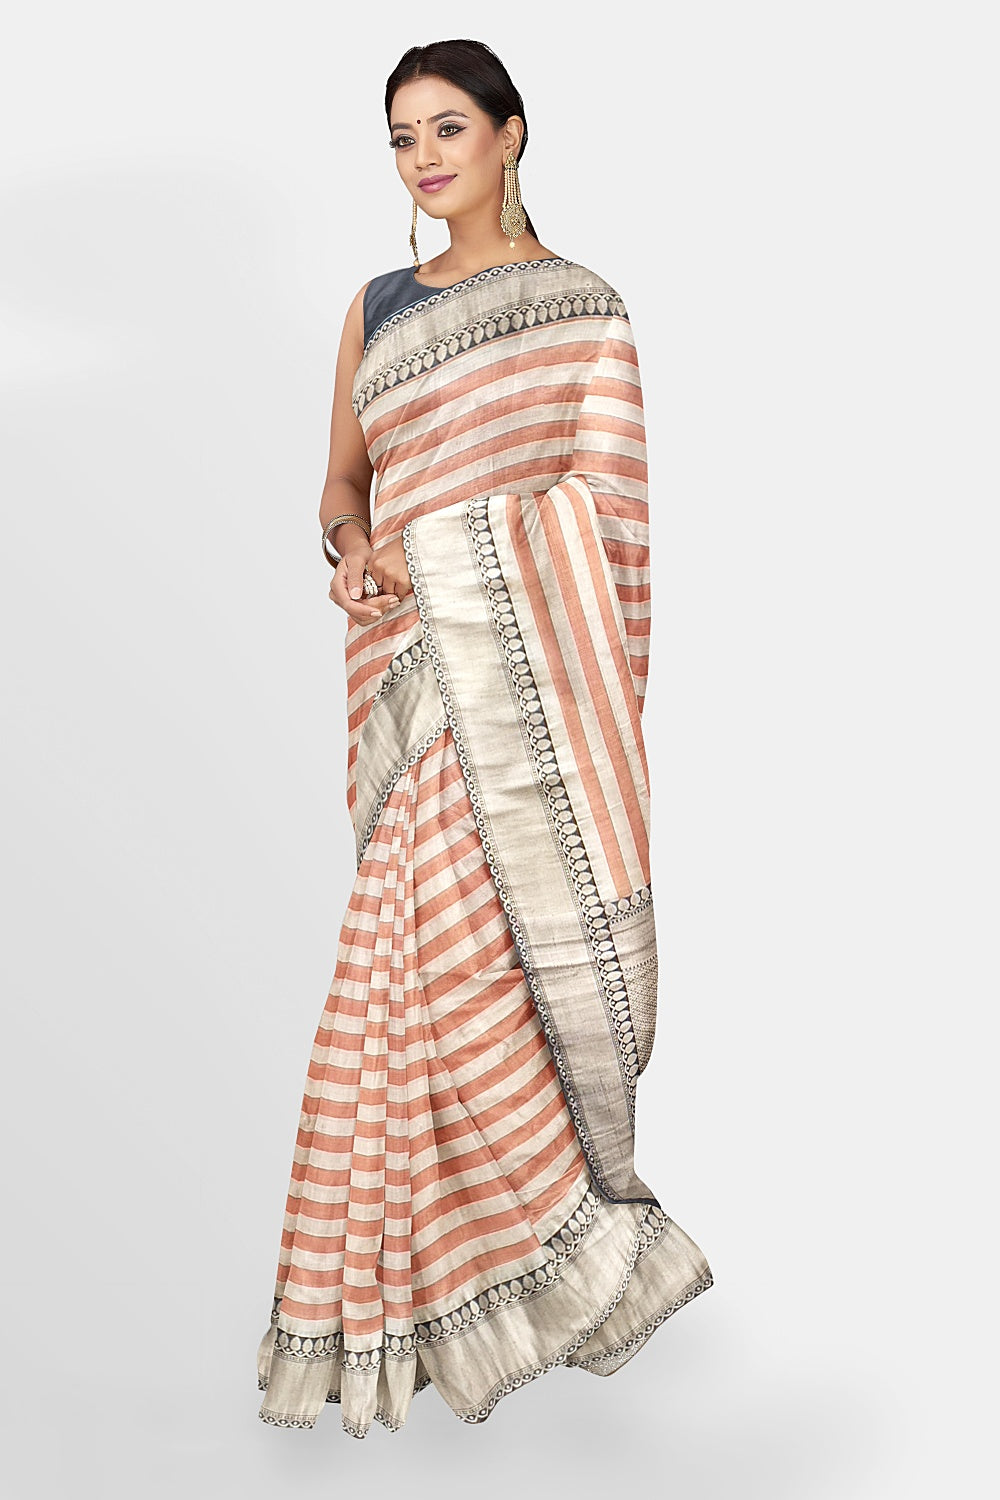 Shop beautiful orange and cream silk cotton Banarasi saree online in USA with zari border. Make a fashion statement at weddings with stunning designer sarees, embroidered sarees with blouse, wedding sarees, handloom sarees from Pure Elegance Indian fashion store in USA.-full view